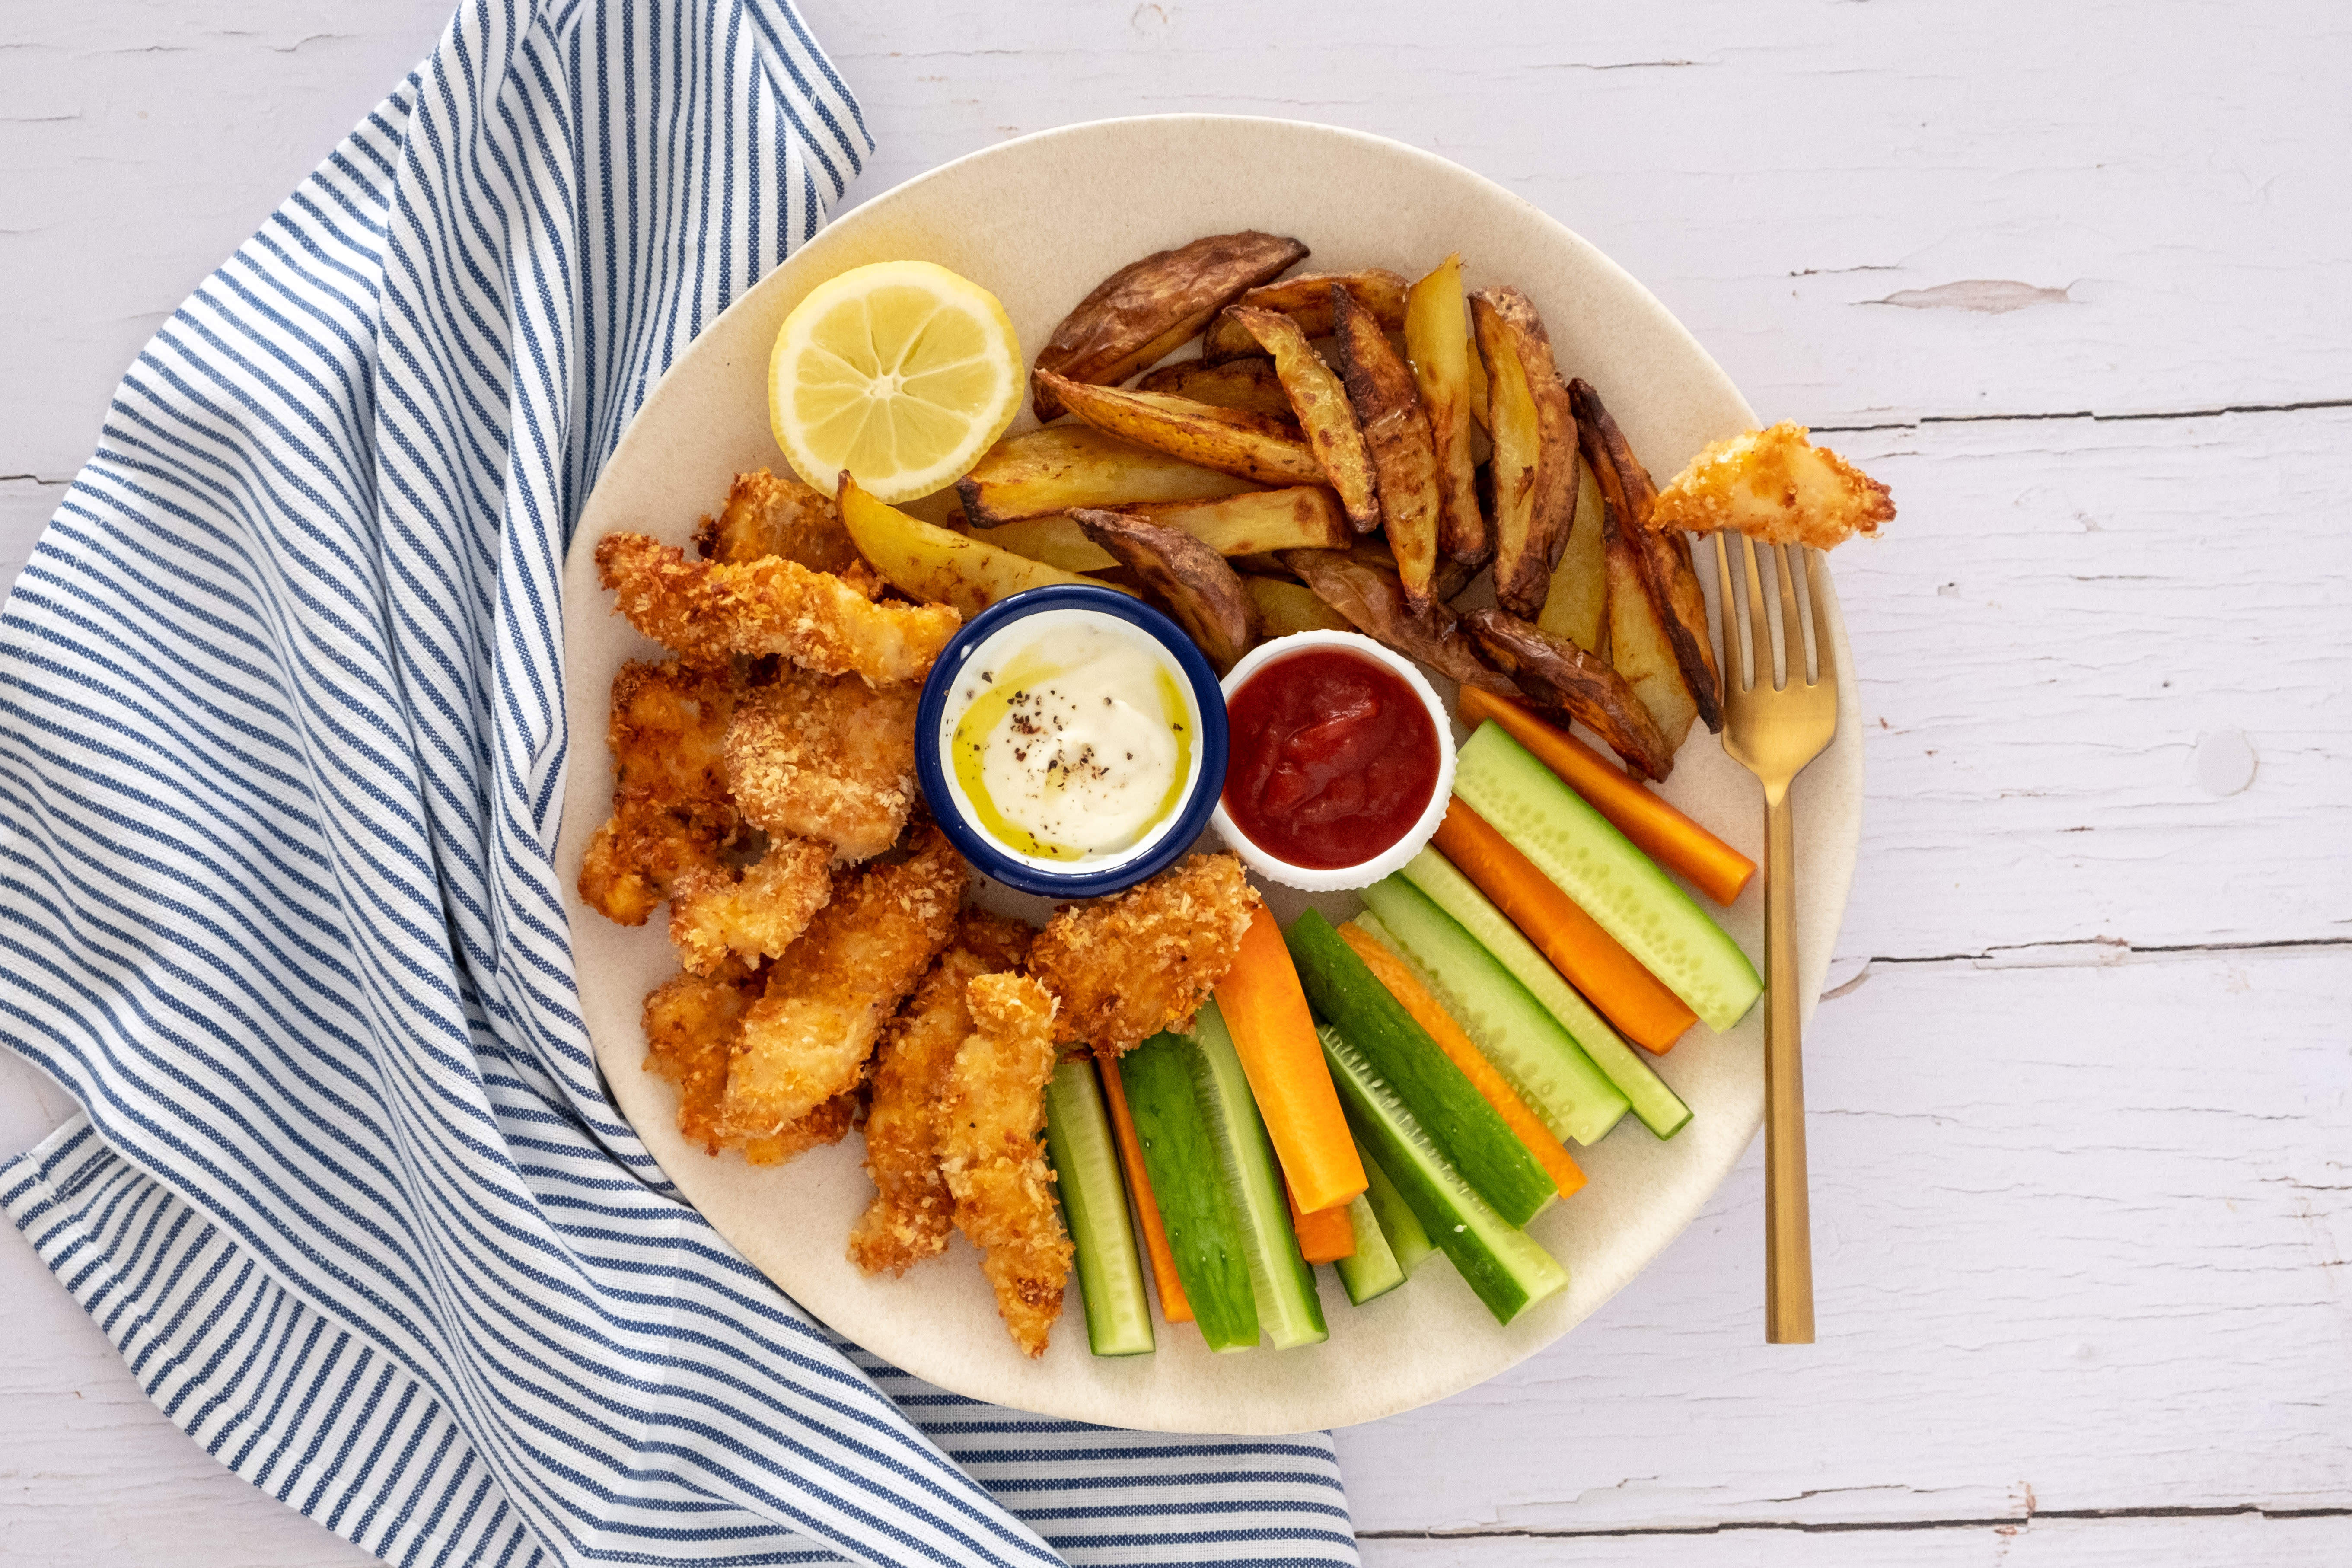 Fish Fingers, Chips and Crudités